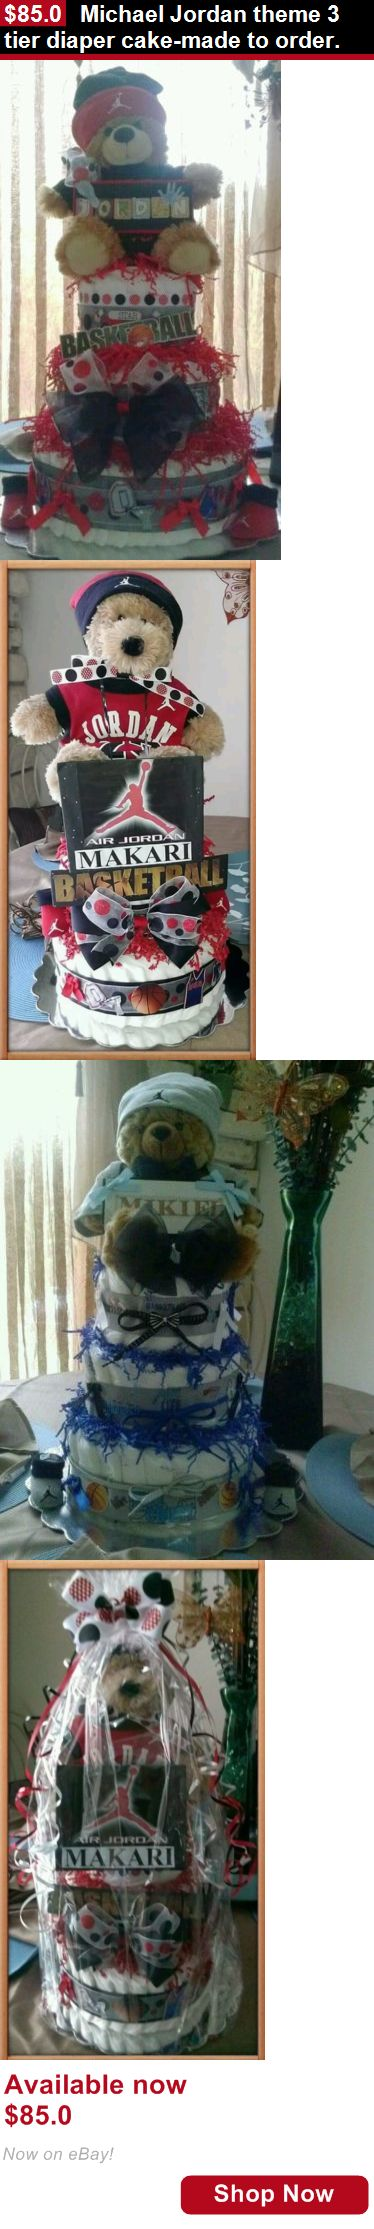 Baby Diaper Cakes: Michael Jordan Theme 3 Tier Diaper Cake-Made To Order. BUY IT NOW ONLY: $85.0